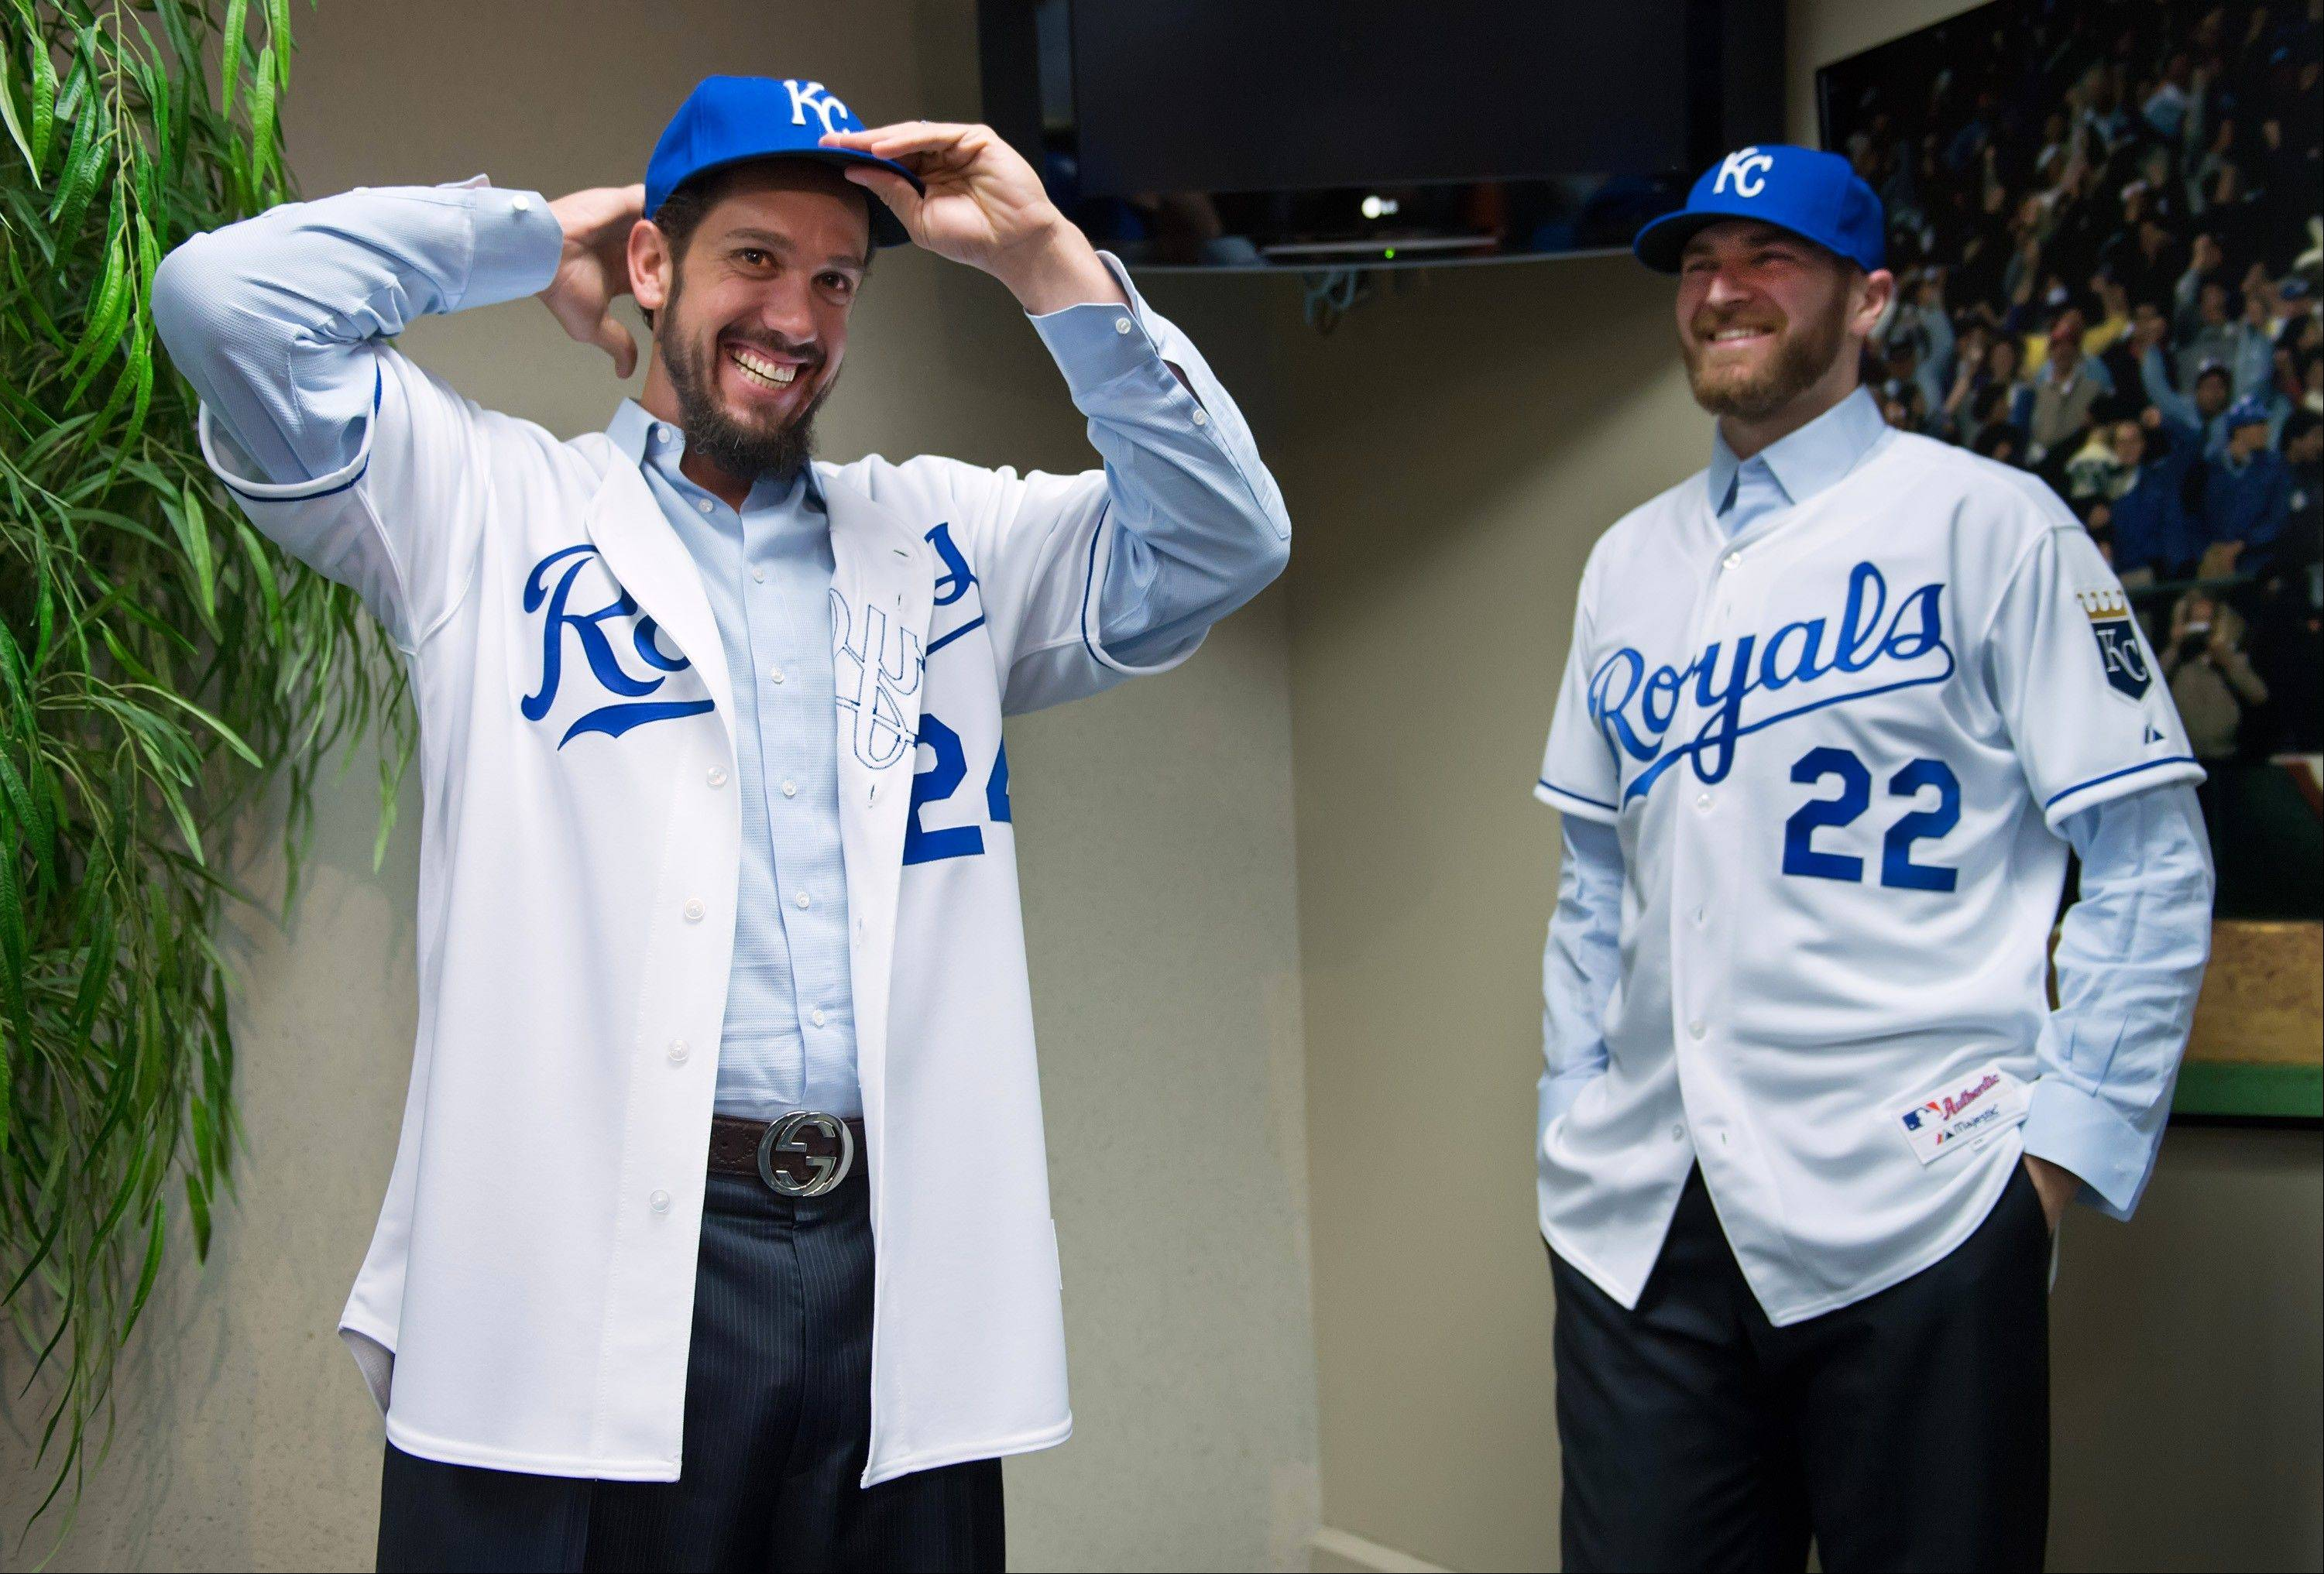 Kansas City Royals pitchers James Shields, left, and Wade Davis, right, pose in their jerseys and hats Wednesday during a news conference at Kauffman Stadium in Kansas City, Mo. The two pitchers arrived in Kansas City to undergo physicals and check out the stadium from the home clubhouse for the first time. Shields and Davis became members of the Royals on Sunday in a blockbuster trade that sent top prospect Wil Myers and three other minor leaguers to Tampa Bay.